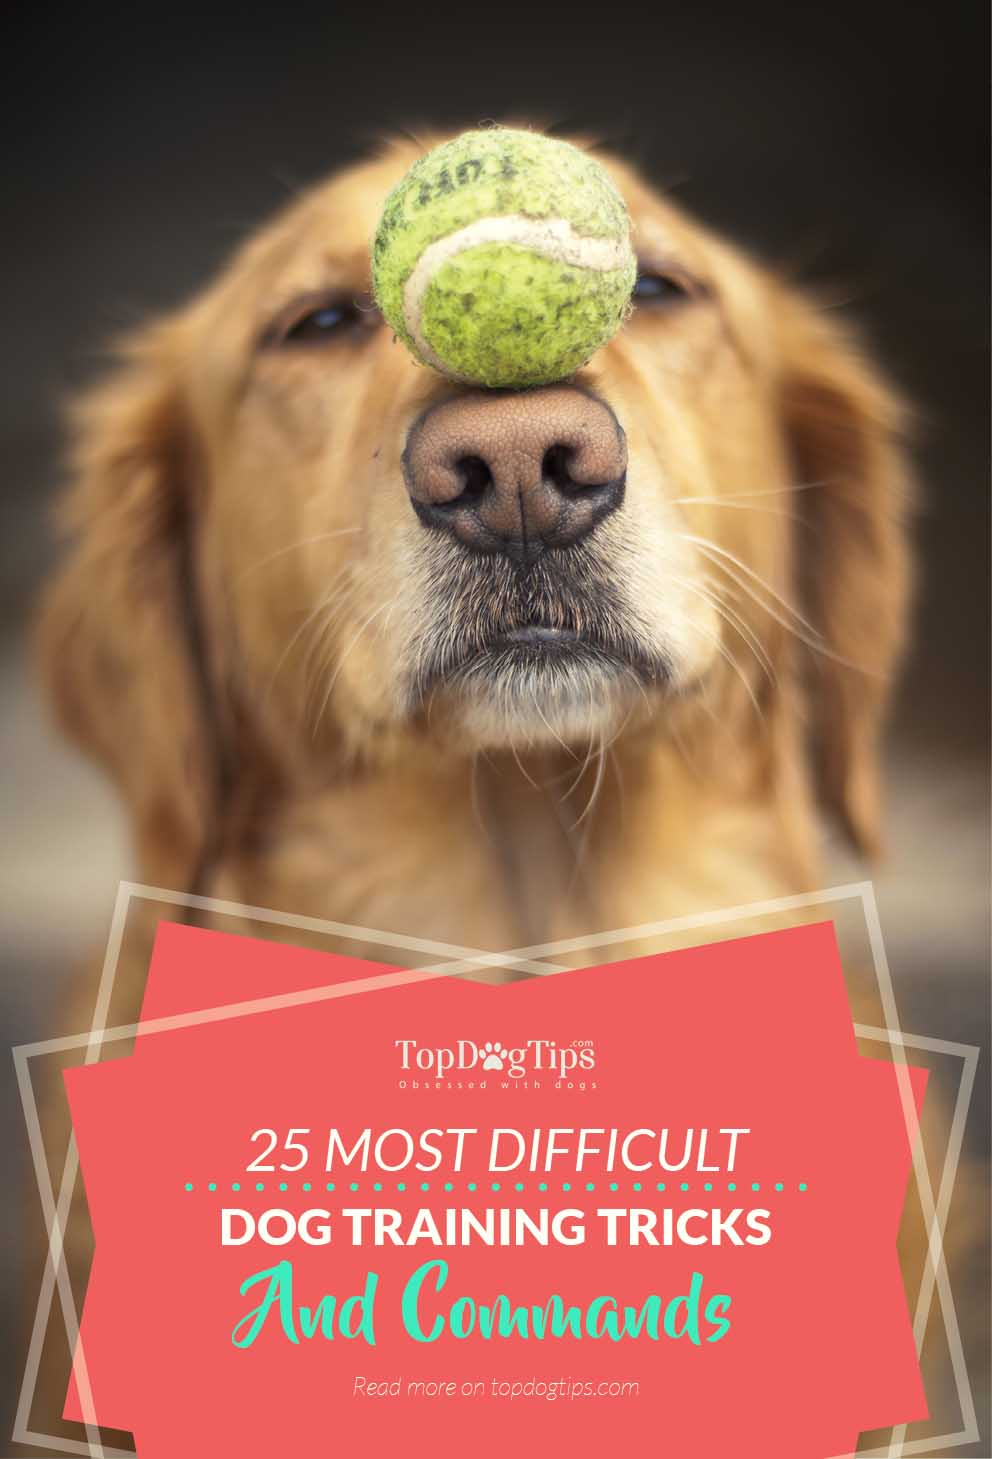 25 Hardest Tricks Commands To Train Dogs From Easiest To Hardest